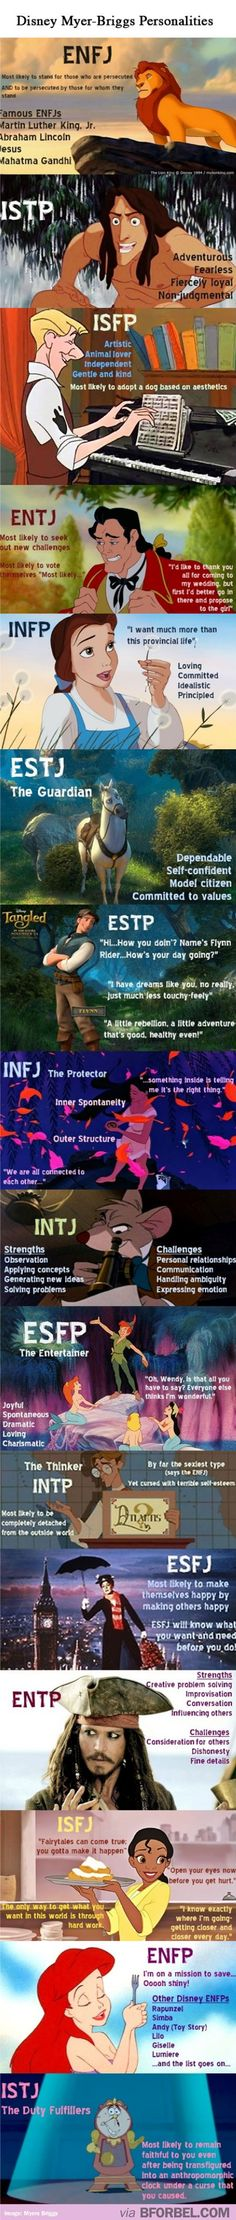 "Disney Character Myers Briggs Personalities...perfect for our ""Flowers for Algernon"" unit :)"